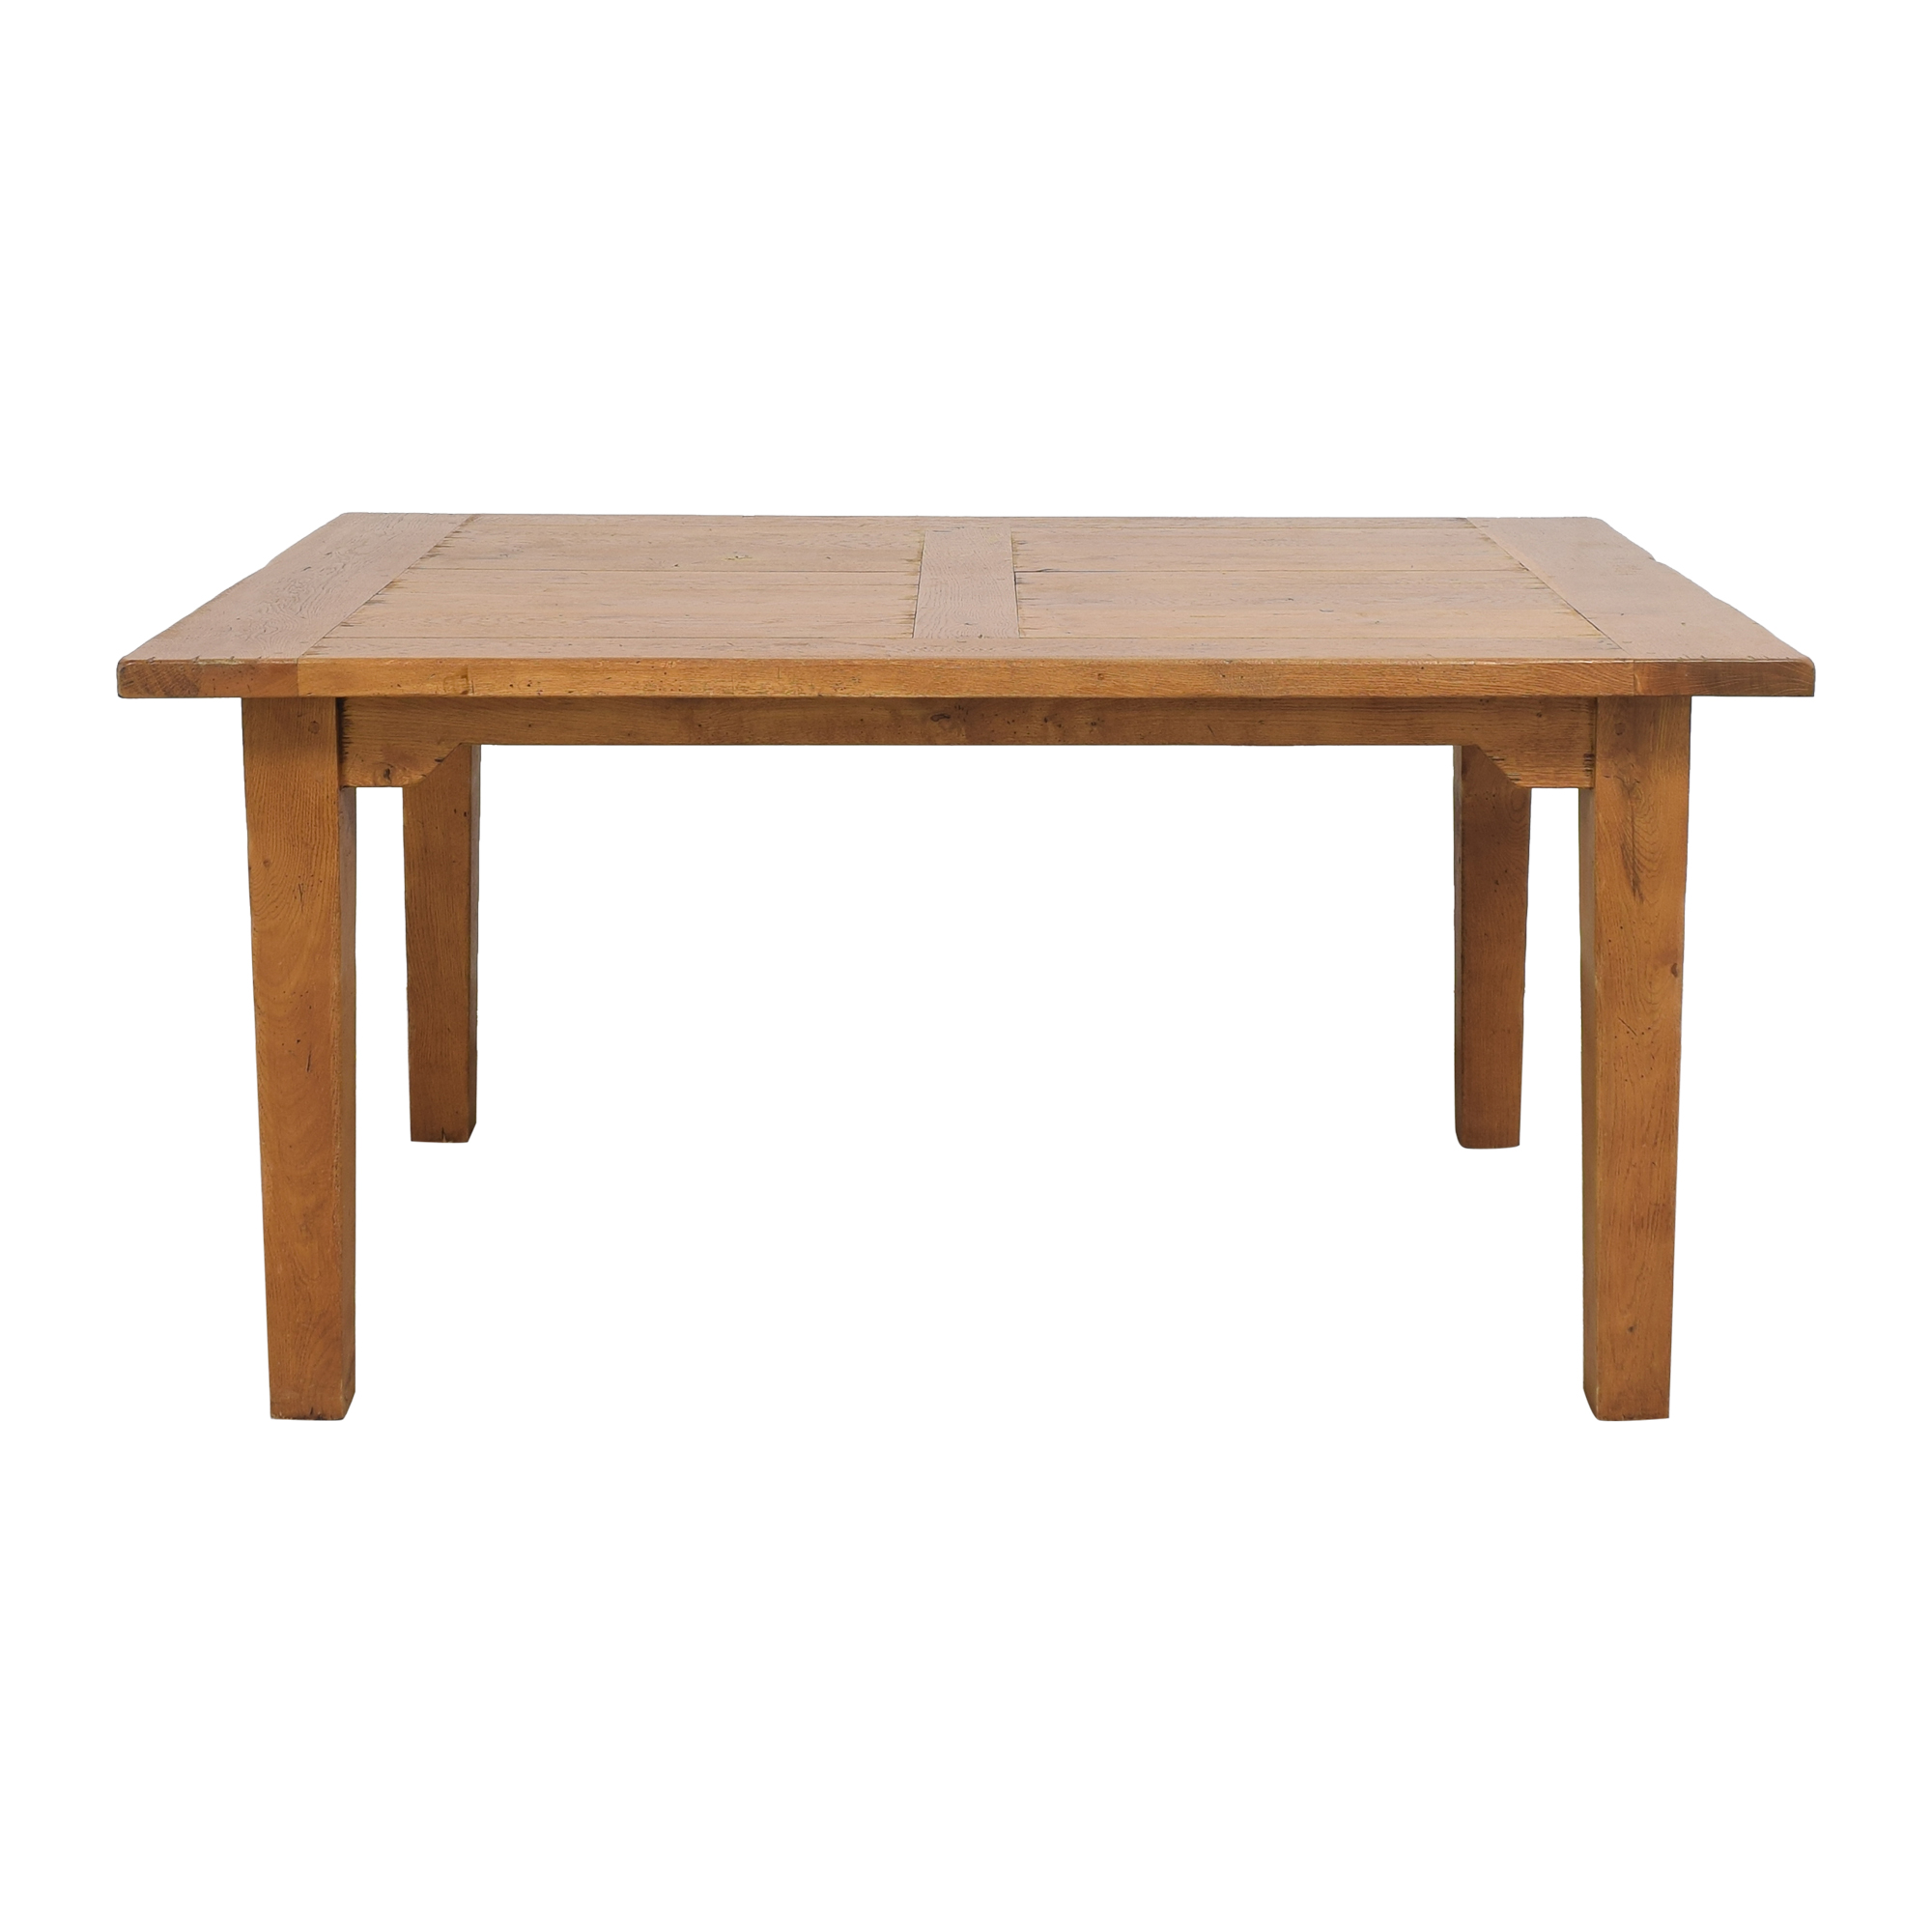 Crate & Barrel Crate and Barrel Extendable Dining Table price